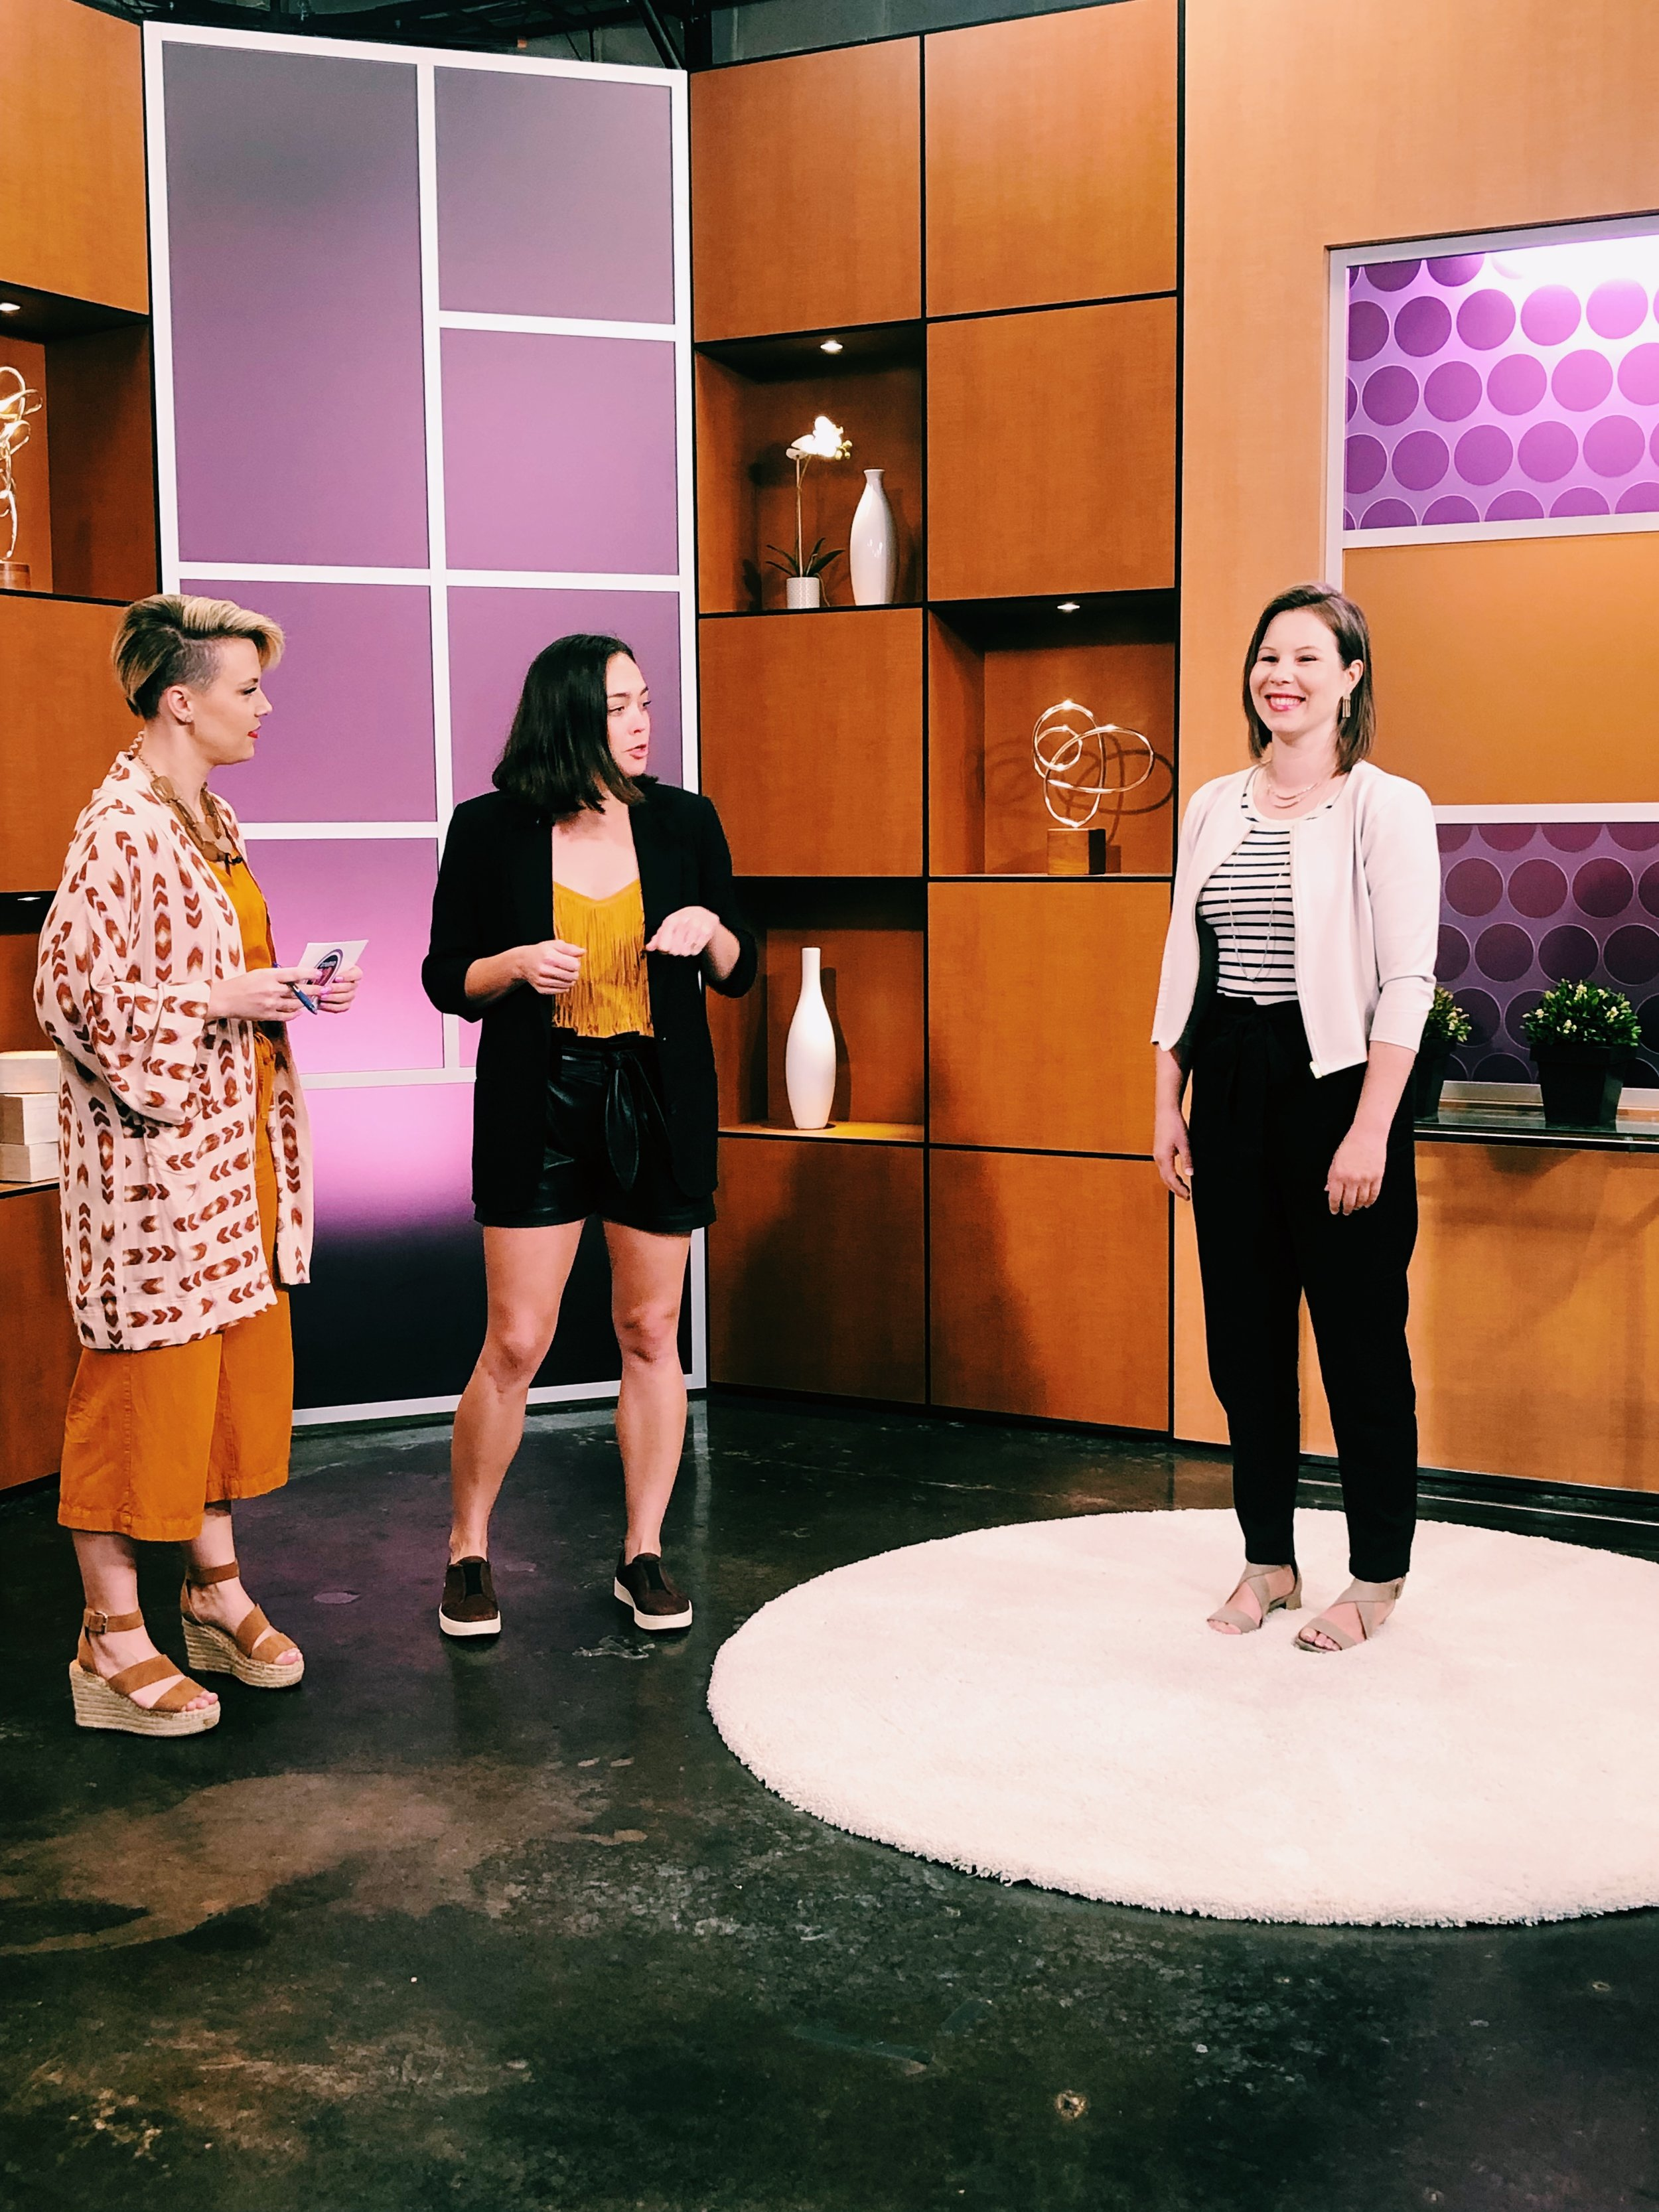 Raquel teaches busy moms how to step out of their athleisure and into outfits they love for the school year.